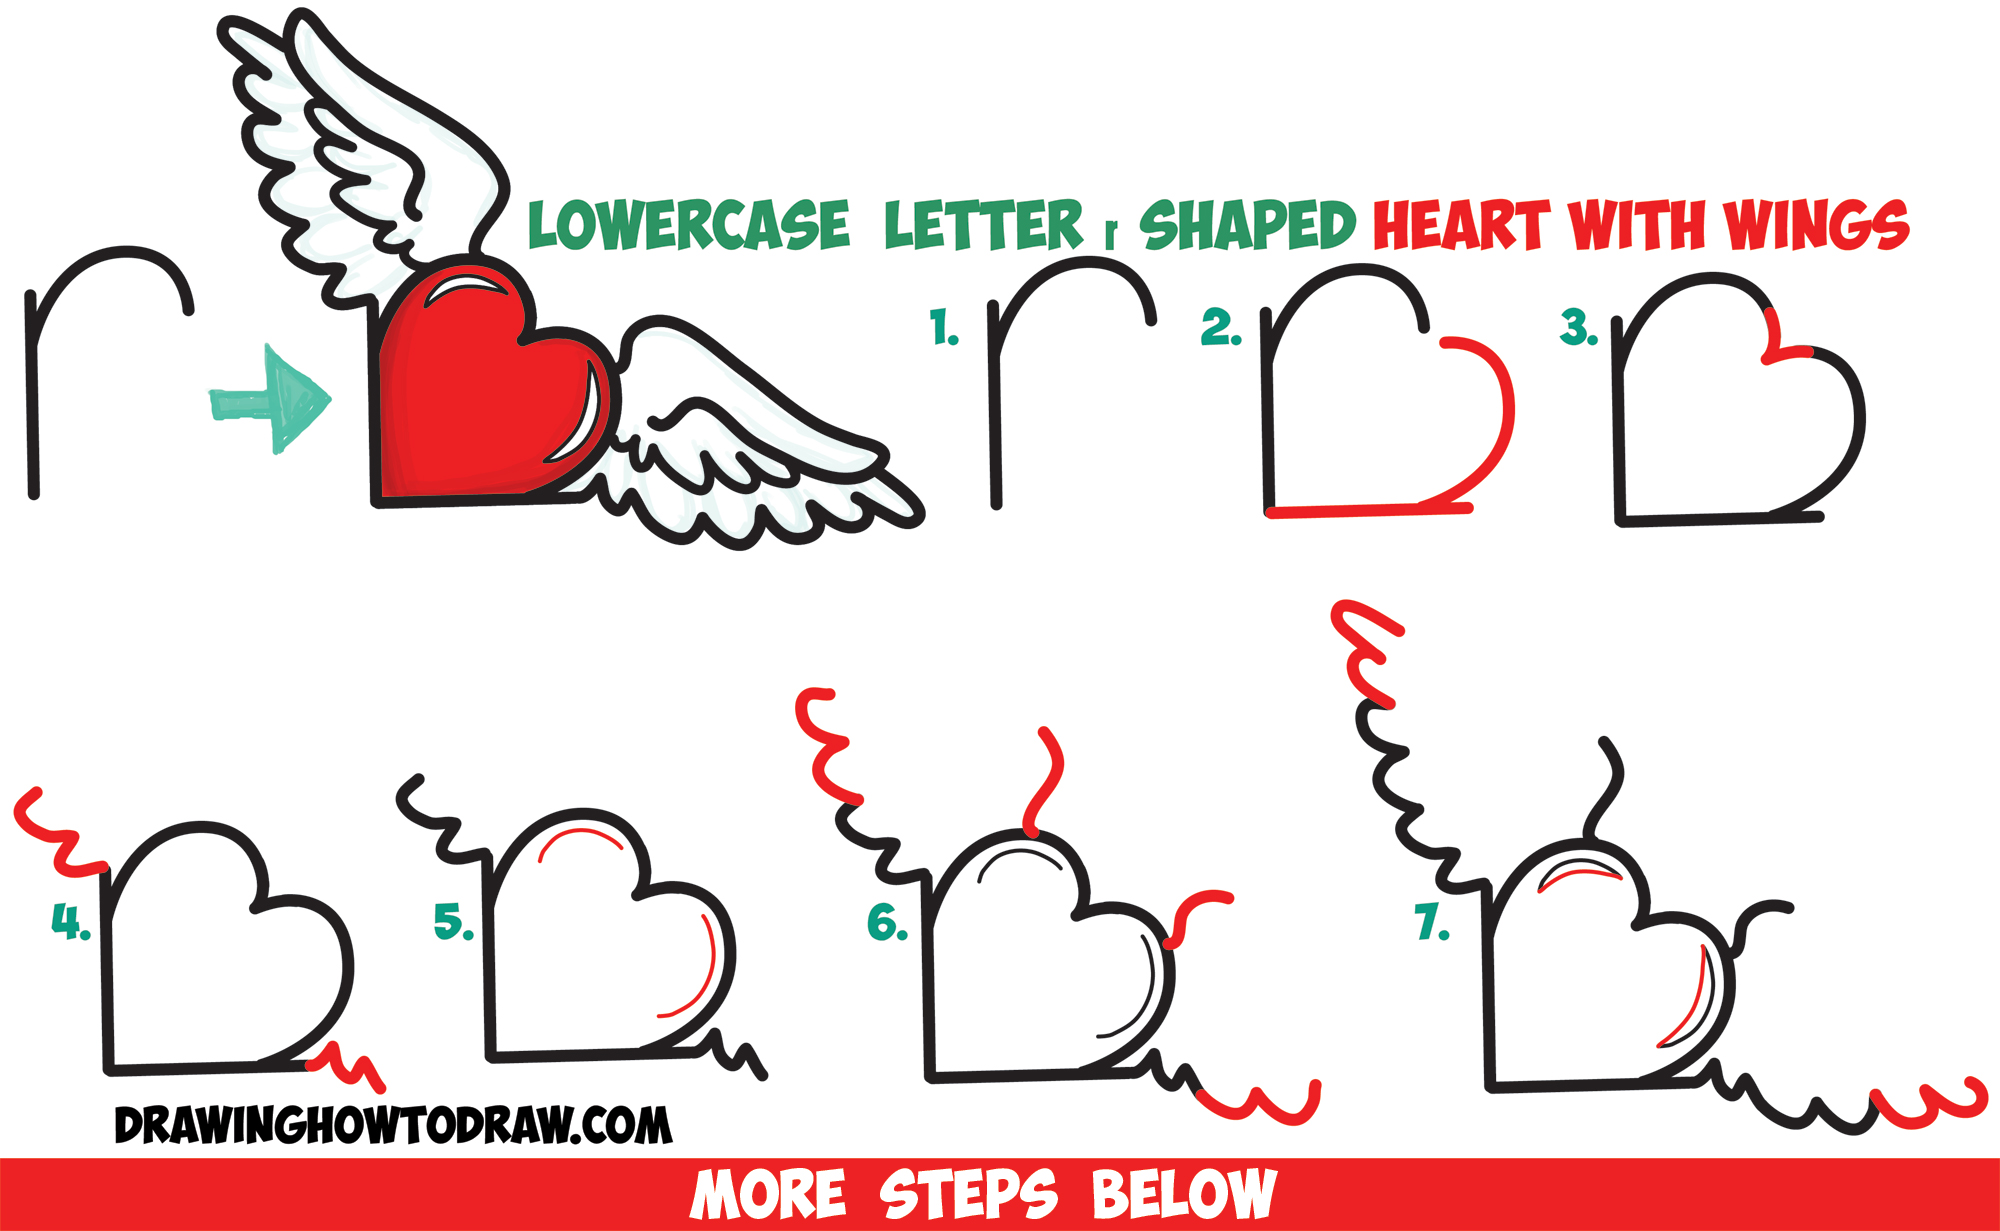 2000x1231 How To Draw Heart With Wings From Lowercase Letter R Shapes